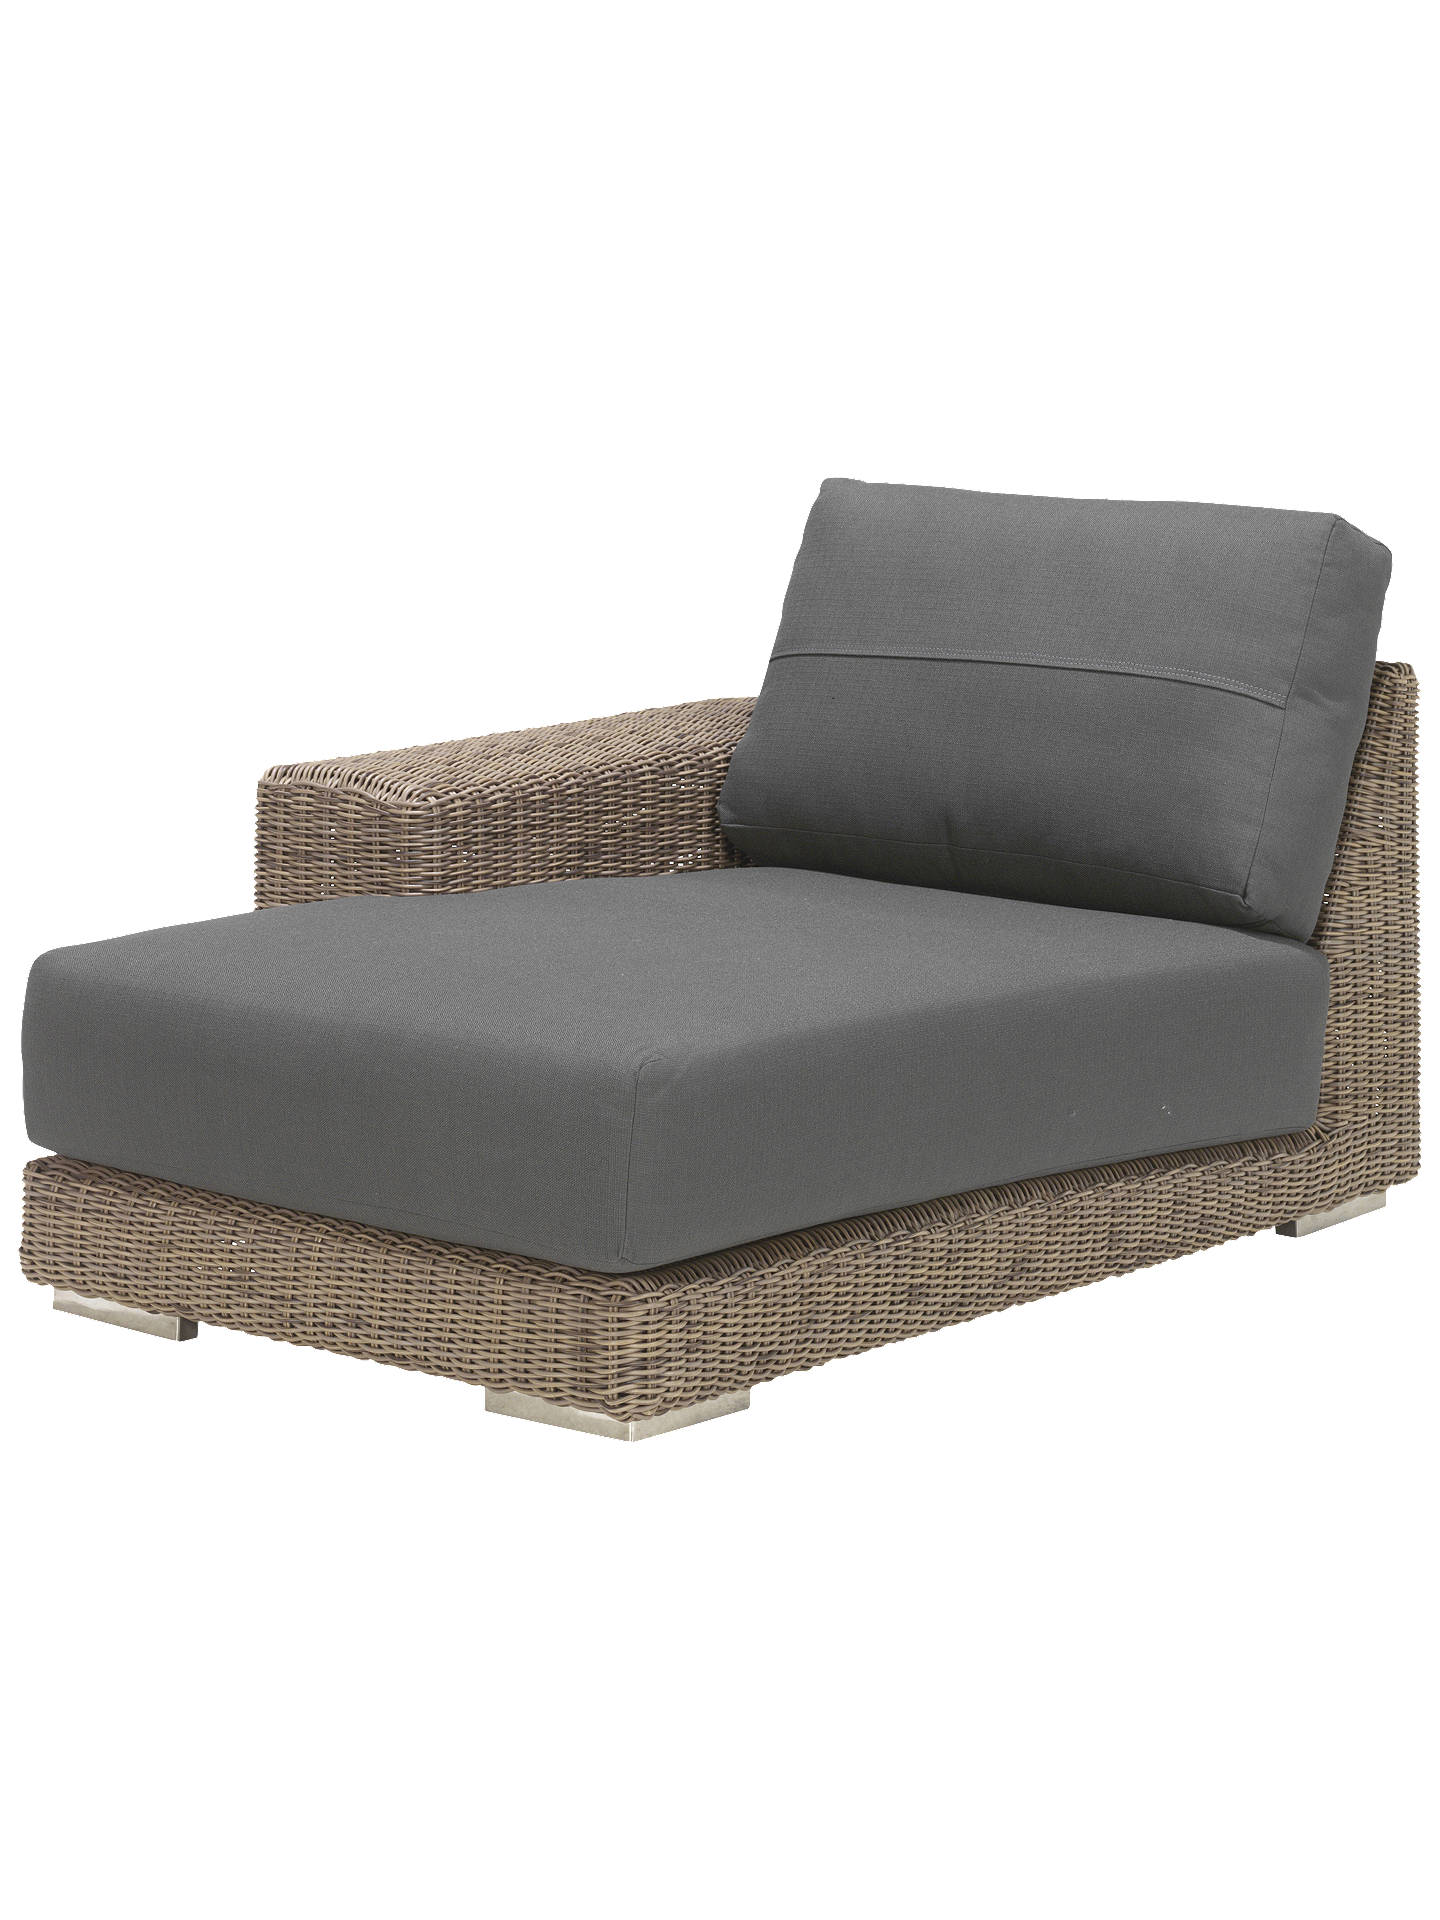 Buy4 seasons outdoor kingston modular garden chaise sofa right hand side online at johnlewis